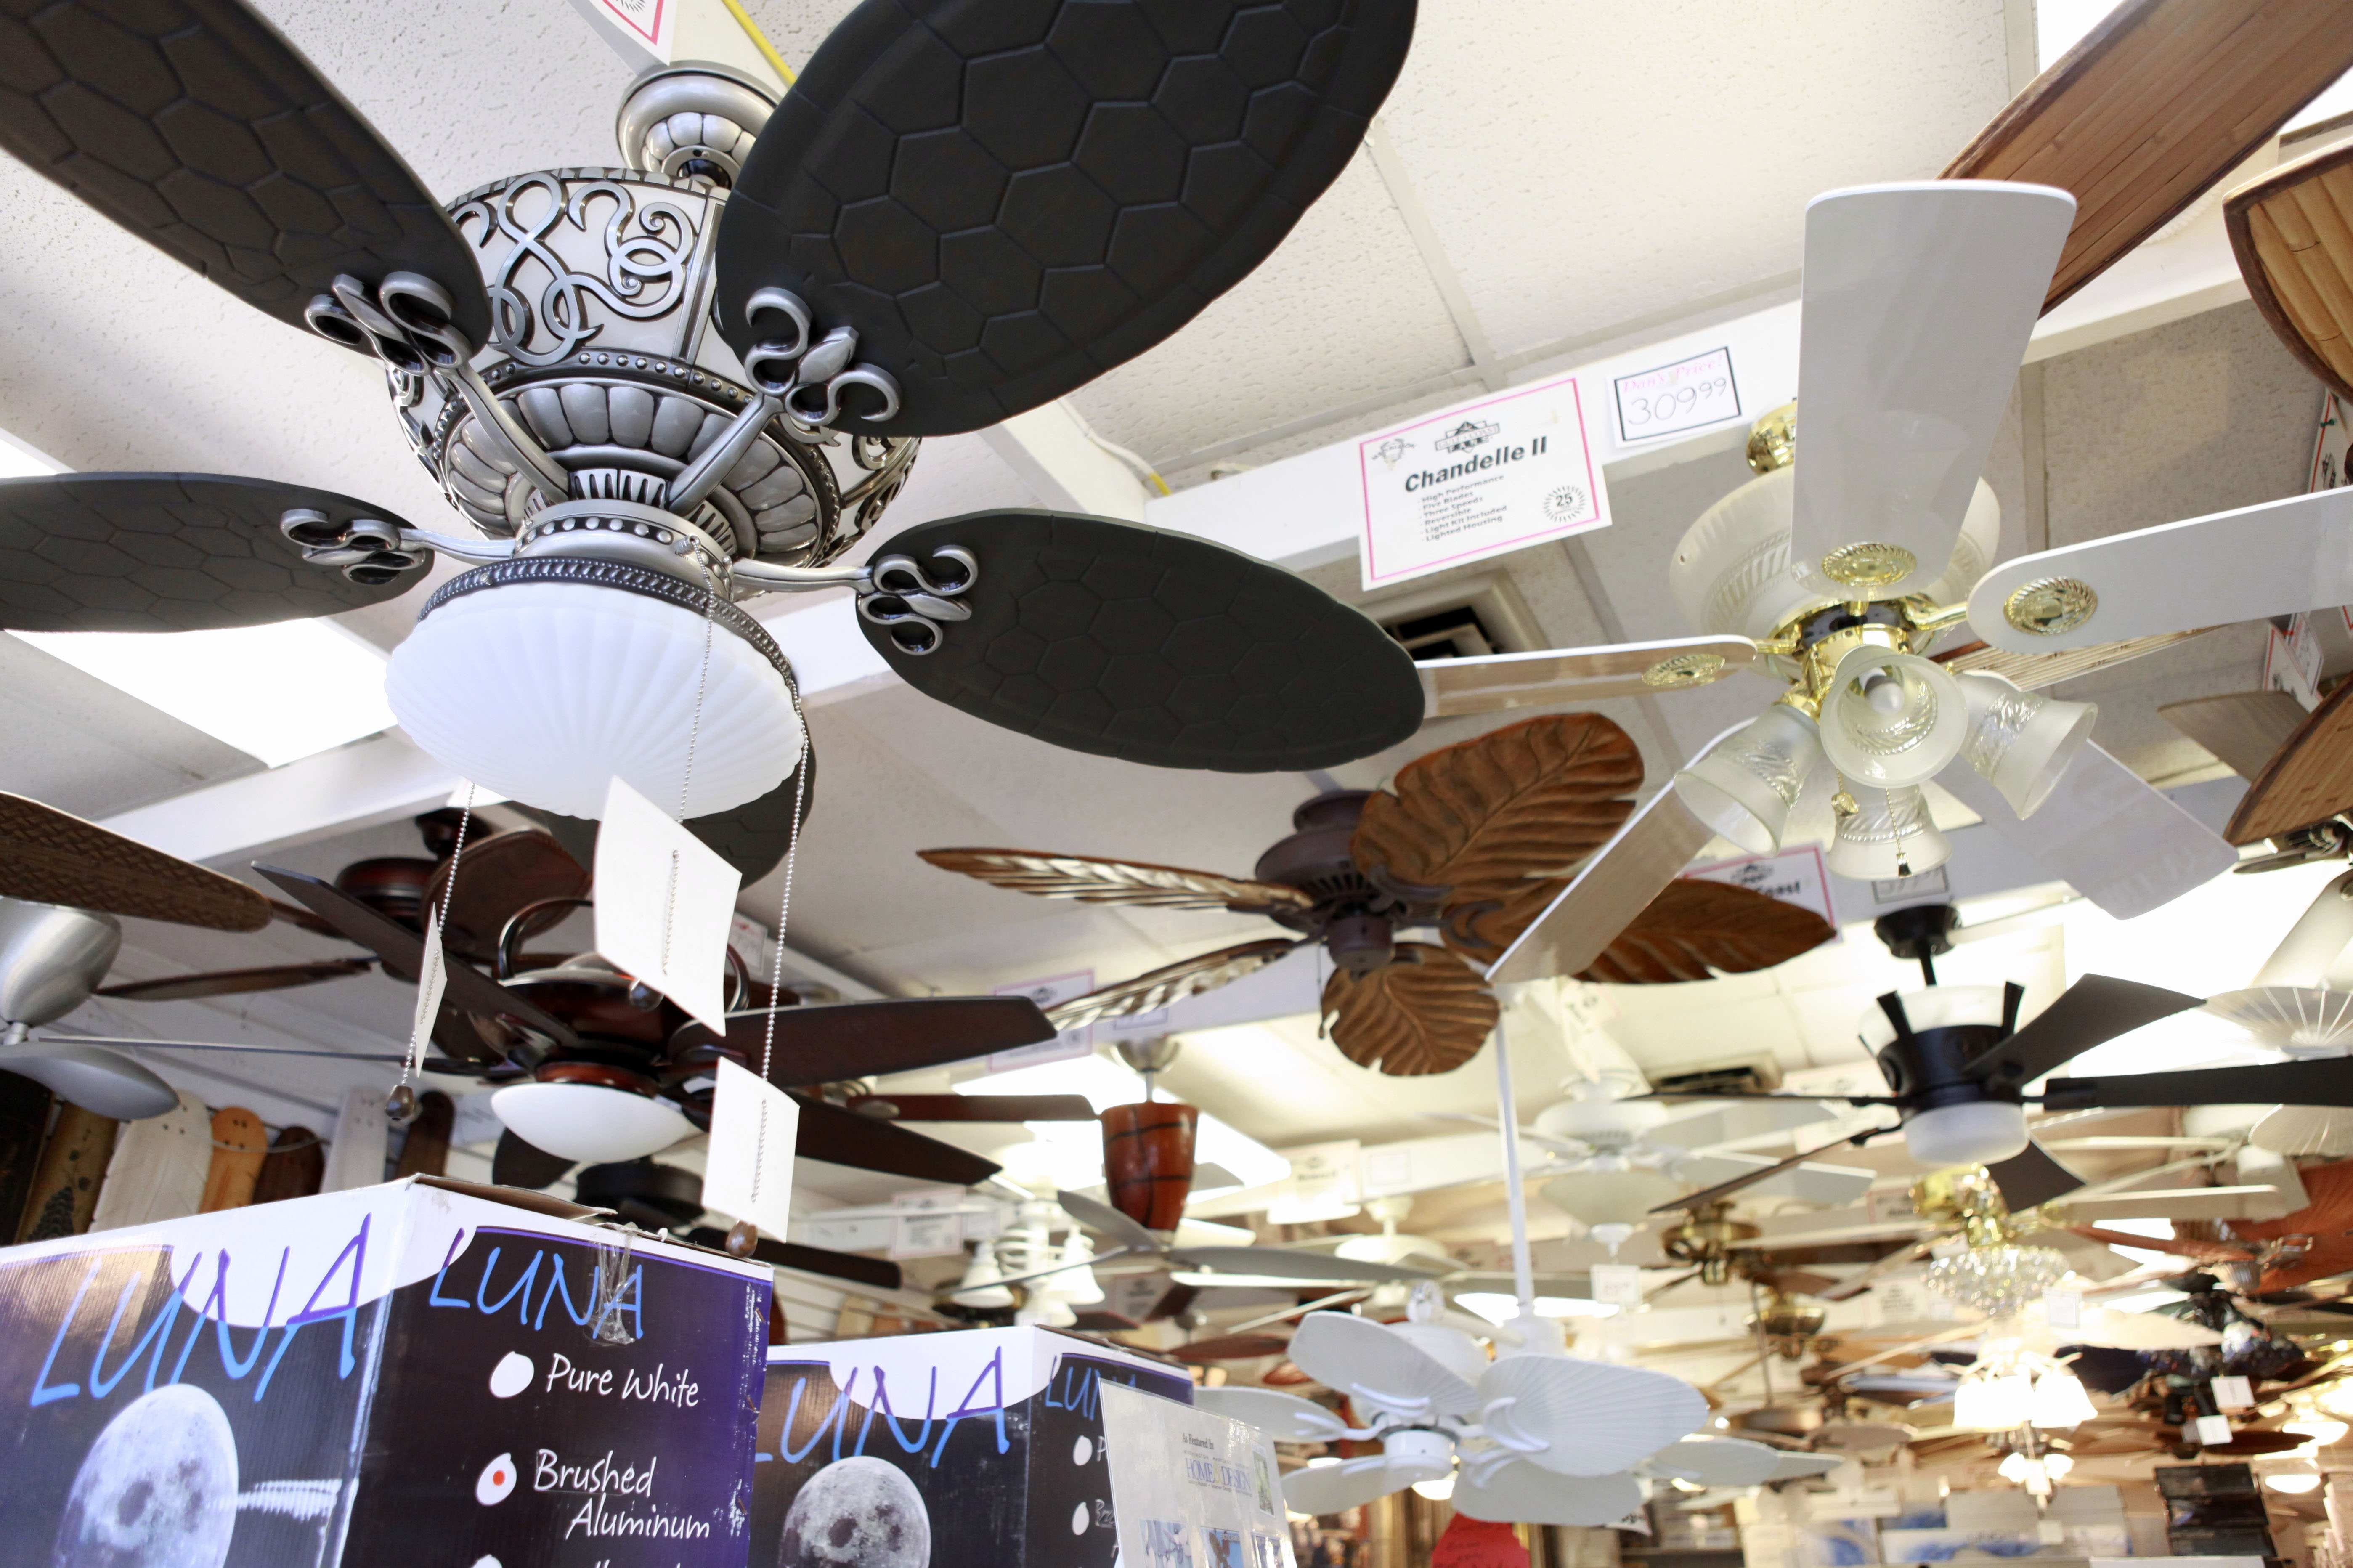 A Cooler Alternative The Spokesman Review Lights Ceiling Fans Without Energy Saving Can Provide Supplement To Air Conditioning That Prove Efficient During Hot